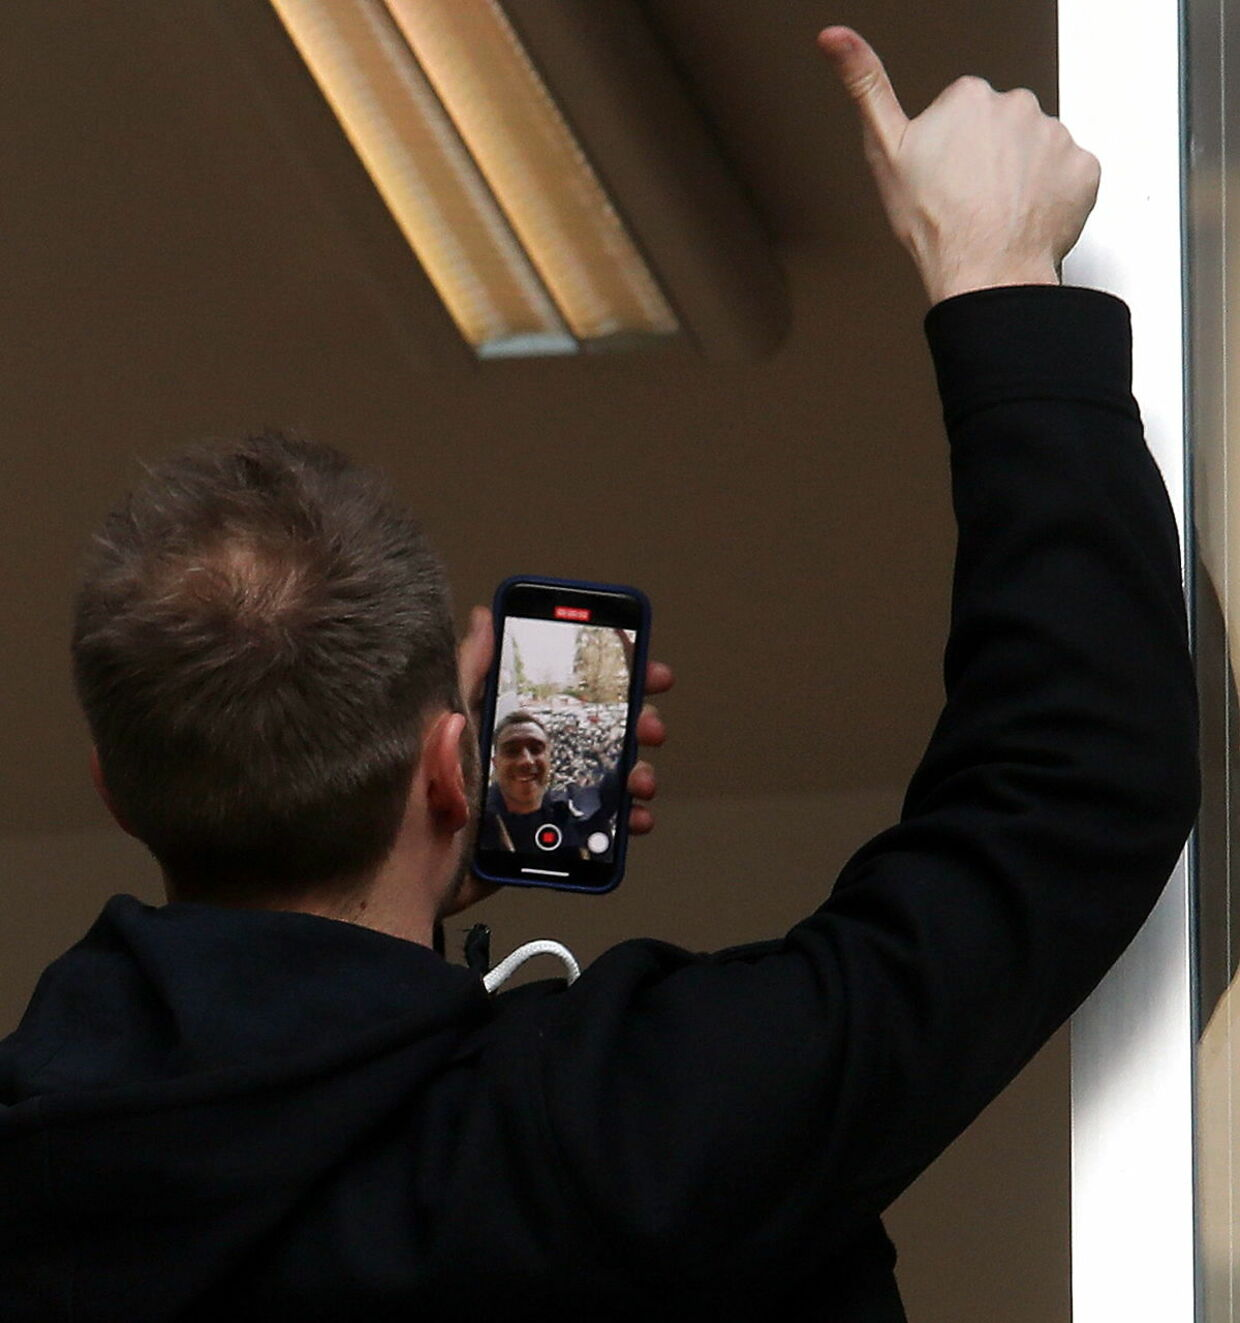 epa08170044 Inter Milan's Danish new player Christian Eriksen takes a selfie as he greets fans from a window of the Coni (Italian Olympic Committee) office before undergoing a medical examination in Milan, Italy, 27 January 2020. EPA/MATTEO BAZZI